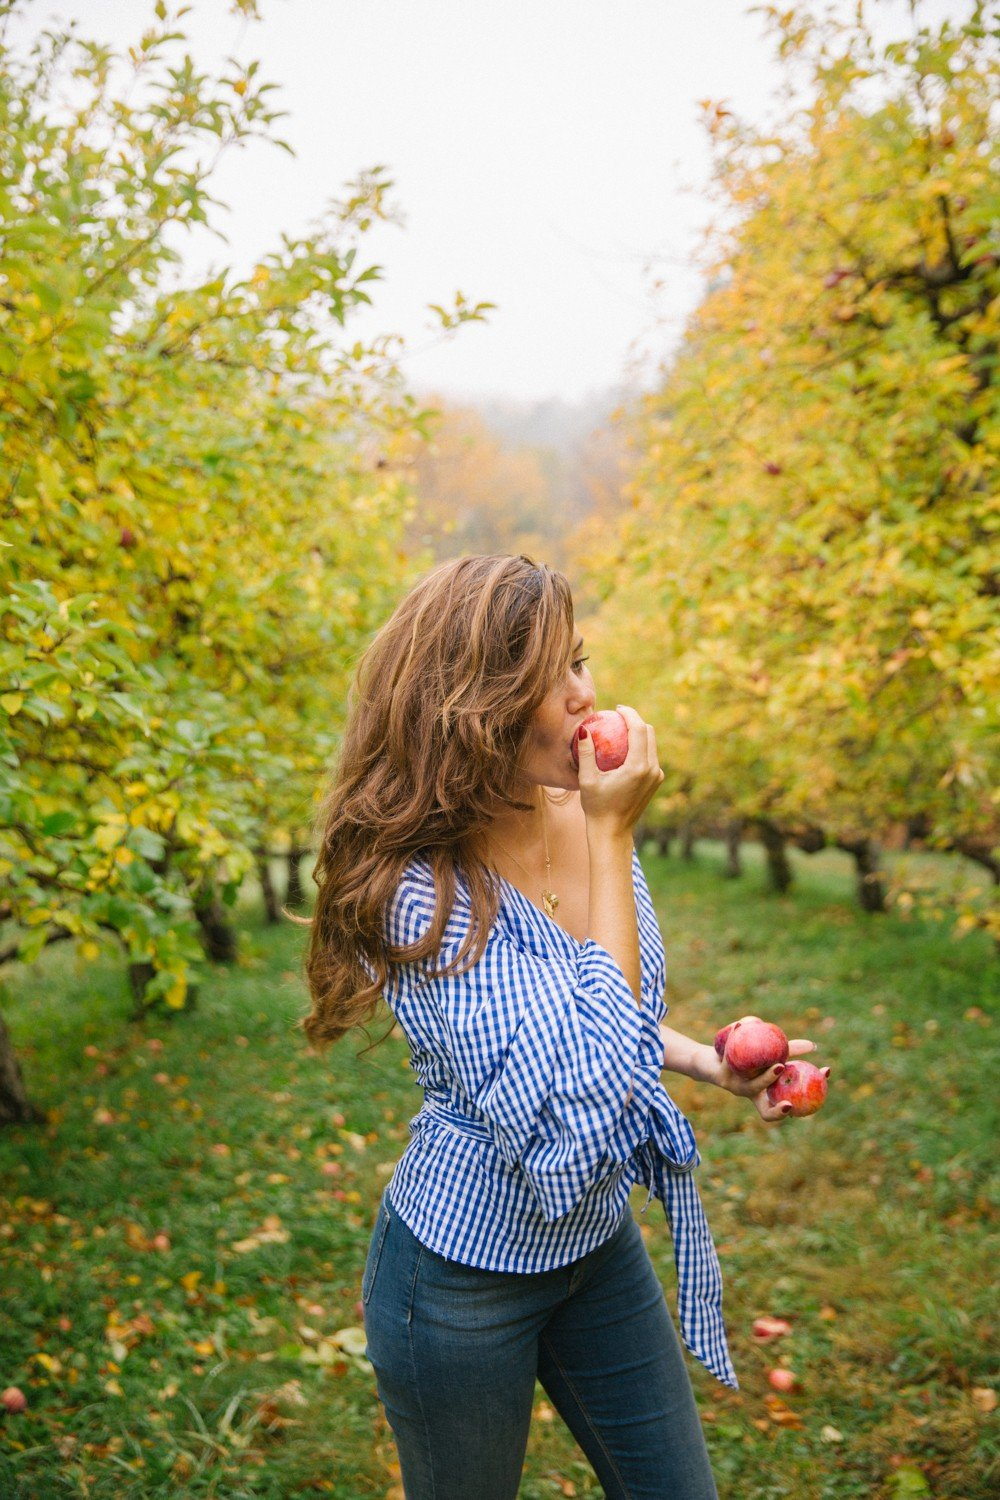 Apple picking (and eating!) in the mountains